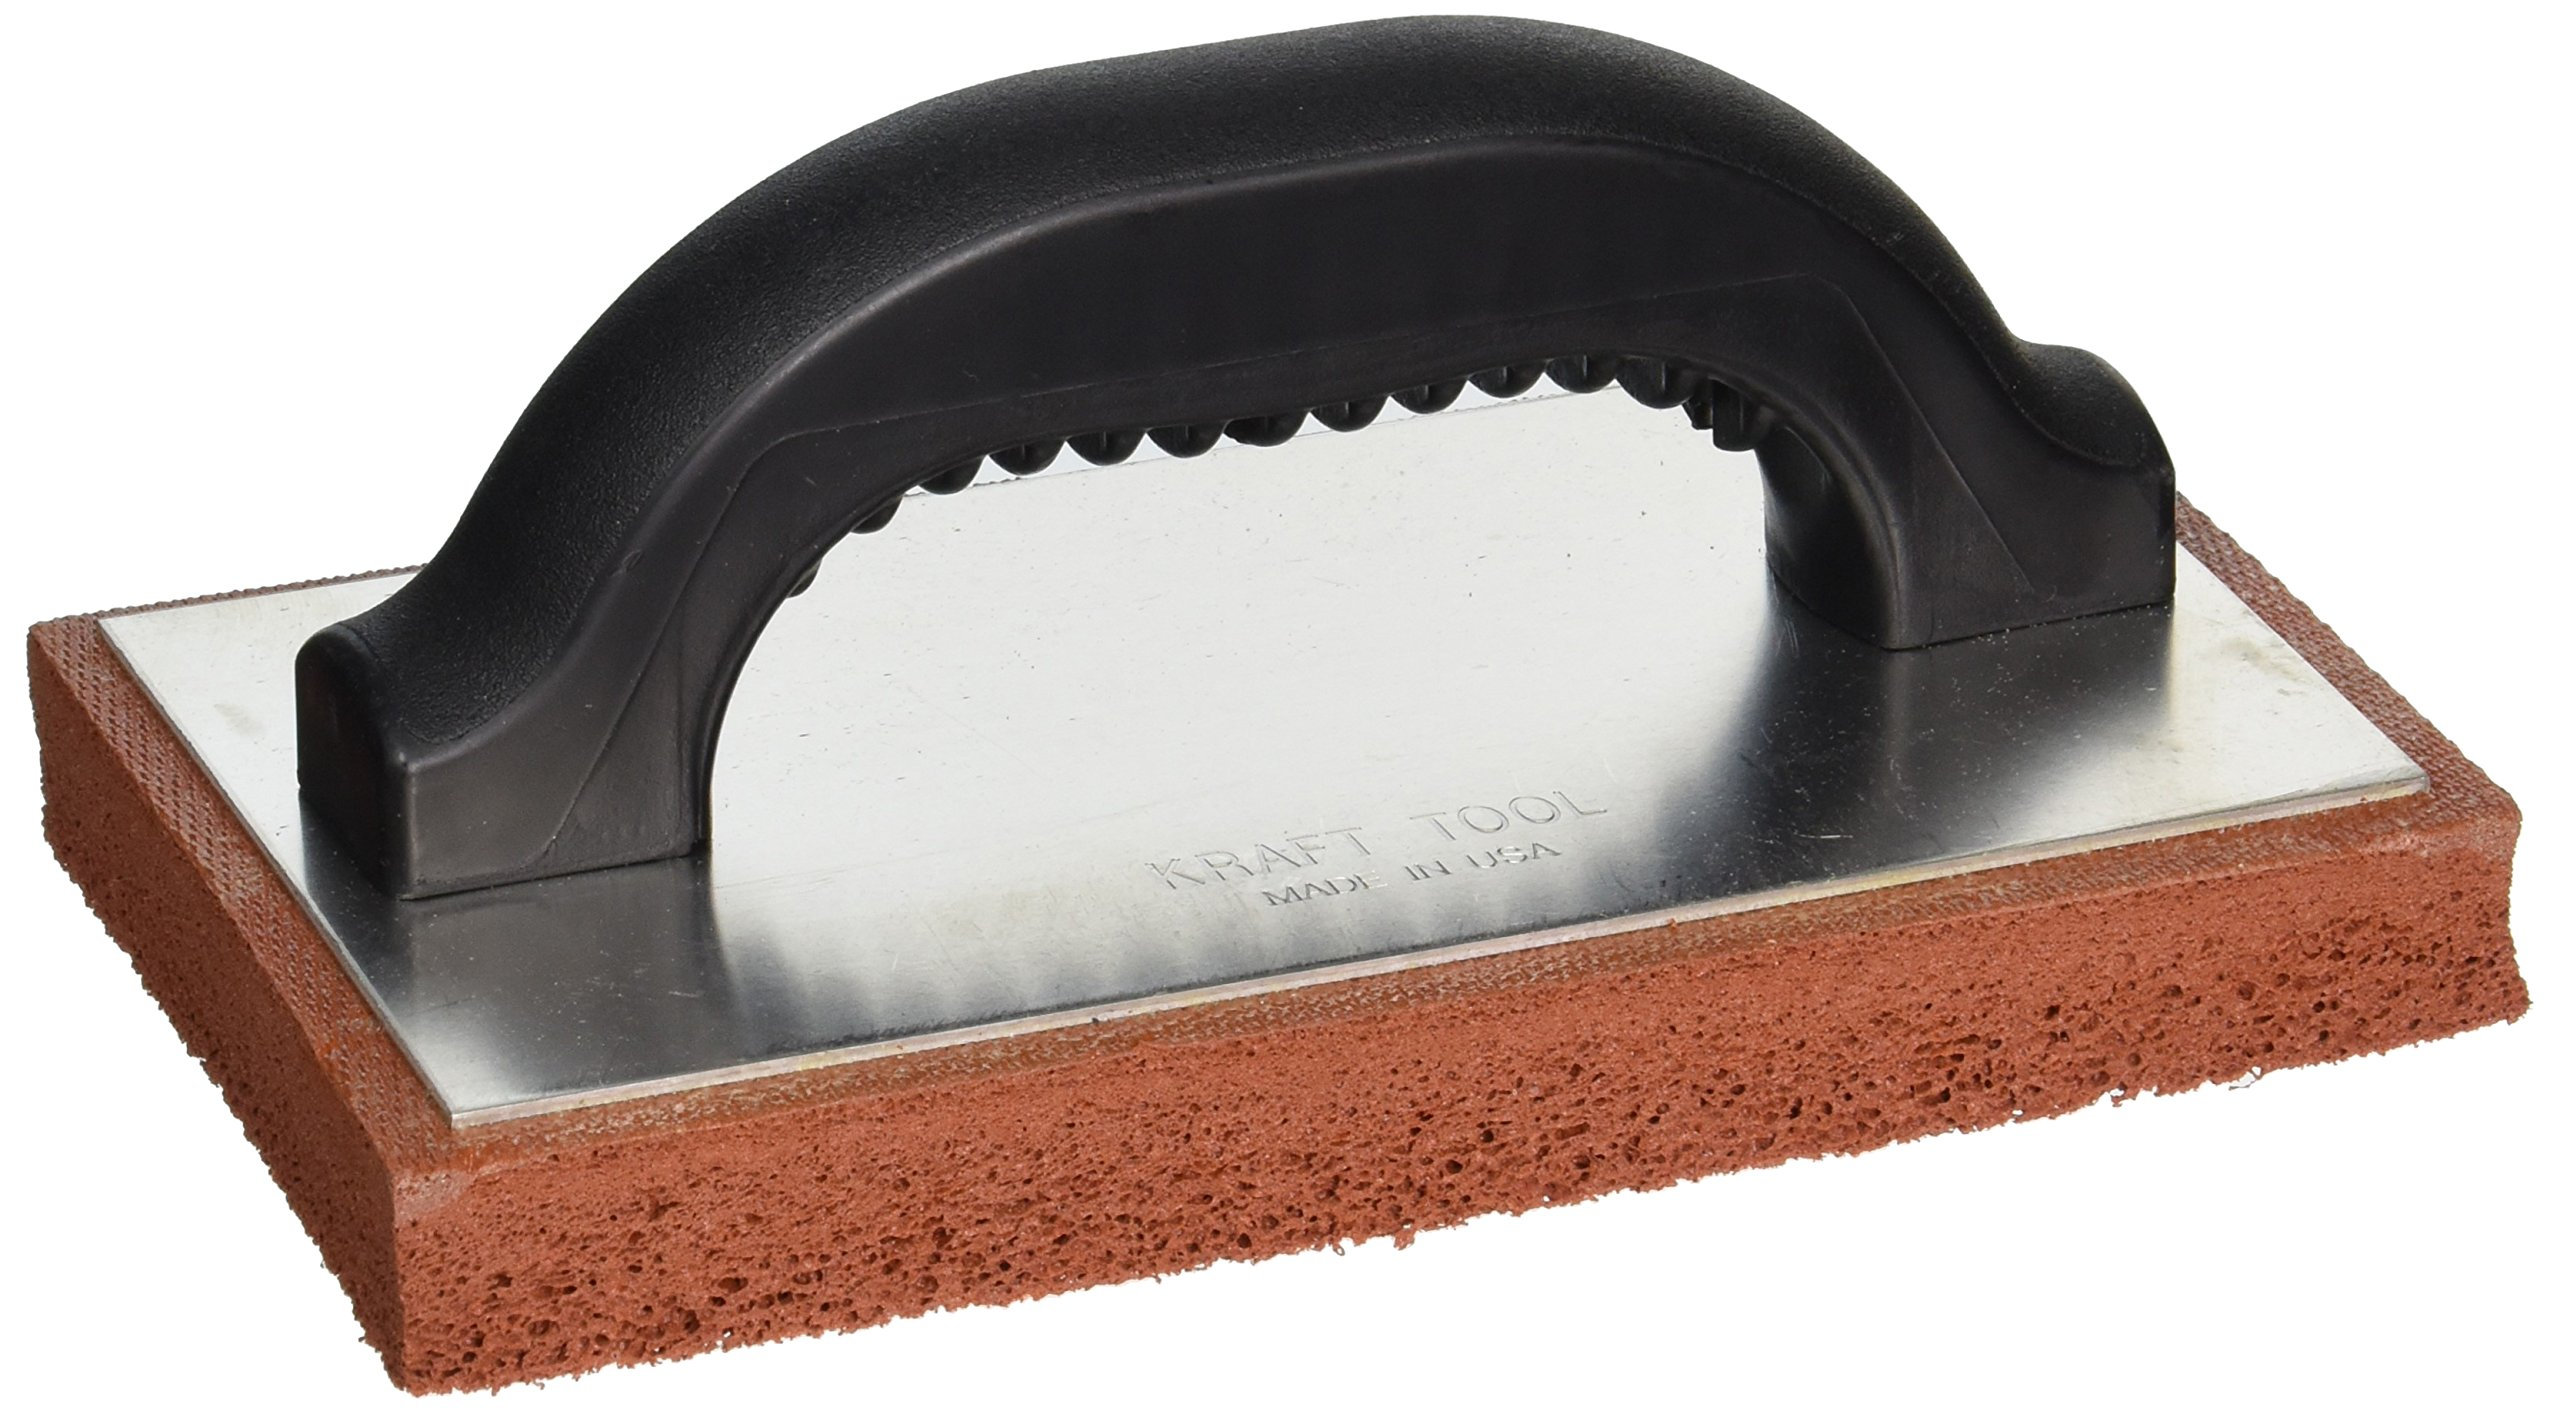 Kraft Tool PL383P Coarse Red Sponge Rubber Plaster Float with Plastic Handle, 8 x 5 x 1-Inch